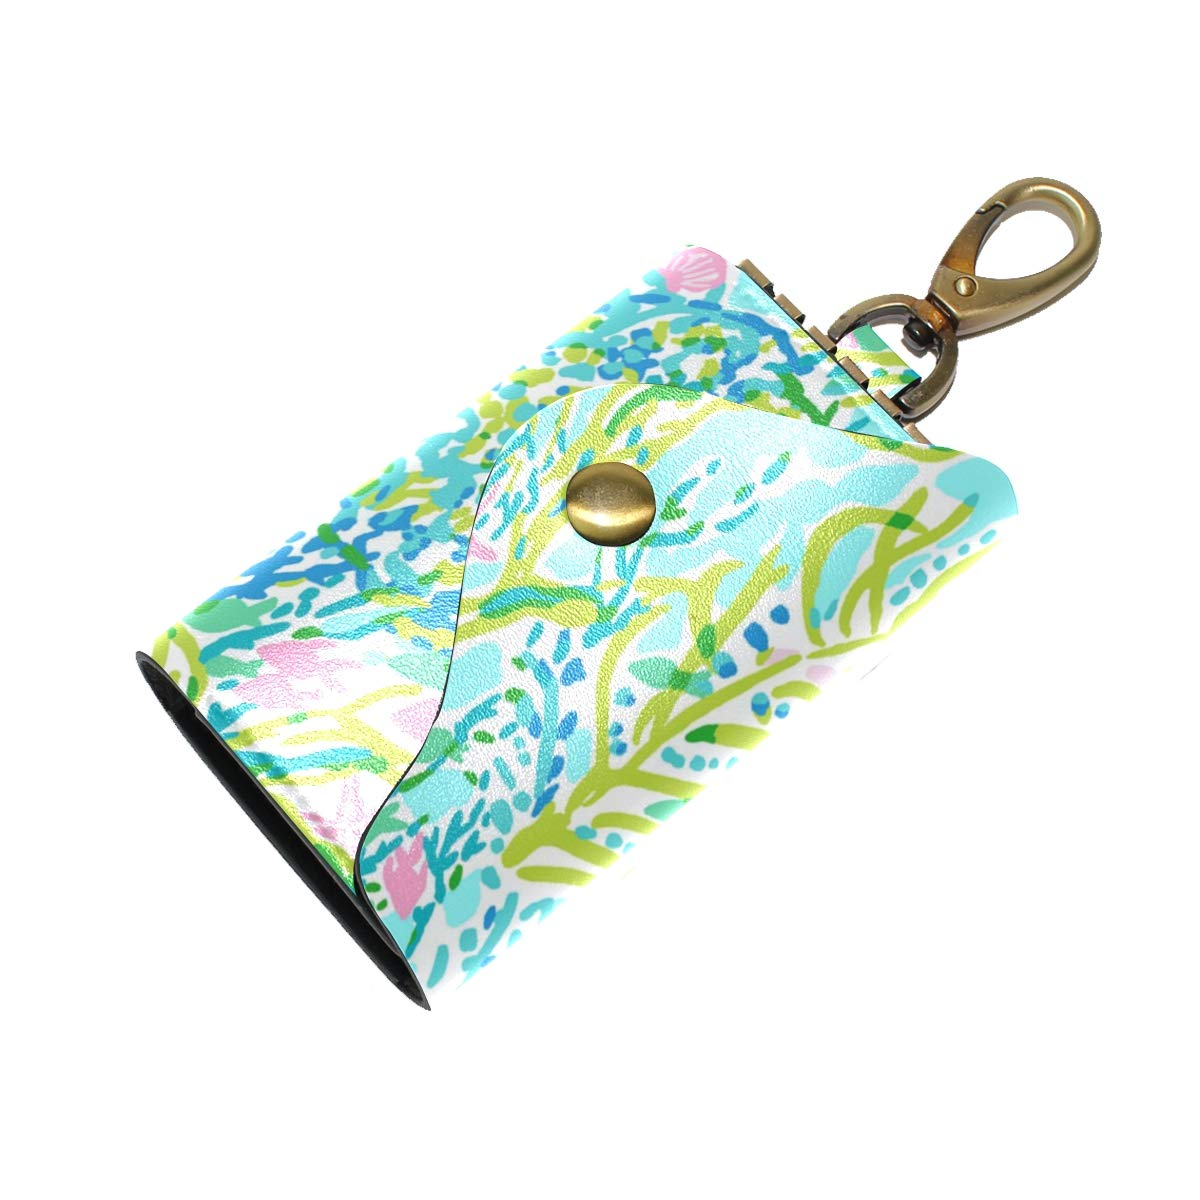 KEAKIA Coral Leather Key Case Wallets Tri-fold Key Holder Keychains with 6 Hooks 2 Slot Snap Closure for Men Women